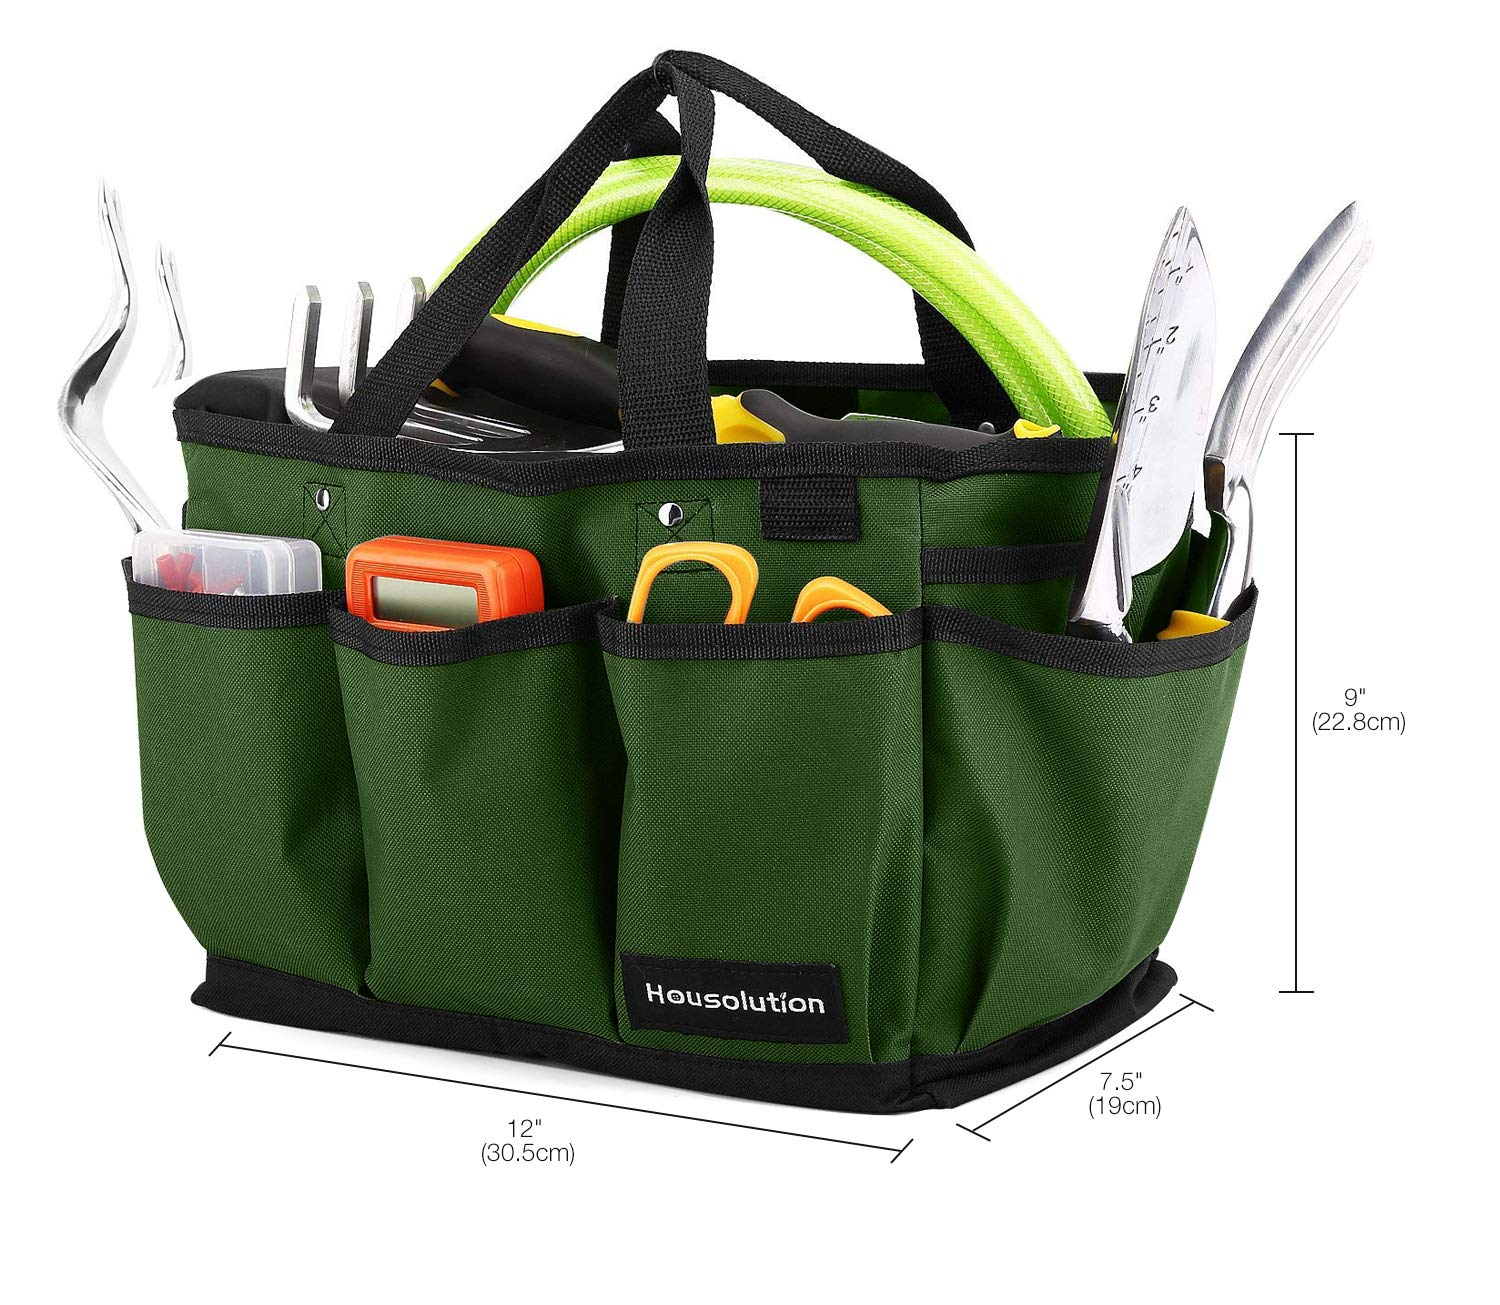 Dark Green Wear-Resistant /& Reusable 14 Inch Deluxe Garden Tool Storage Bag and Home Organizer with Pockets Housolution Gardening Tote Bag